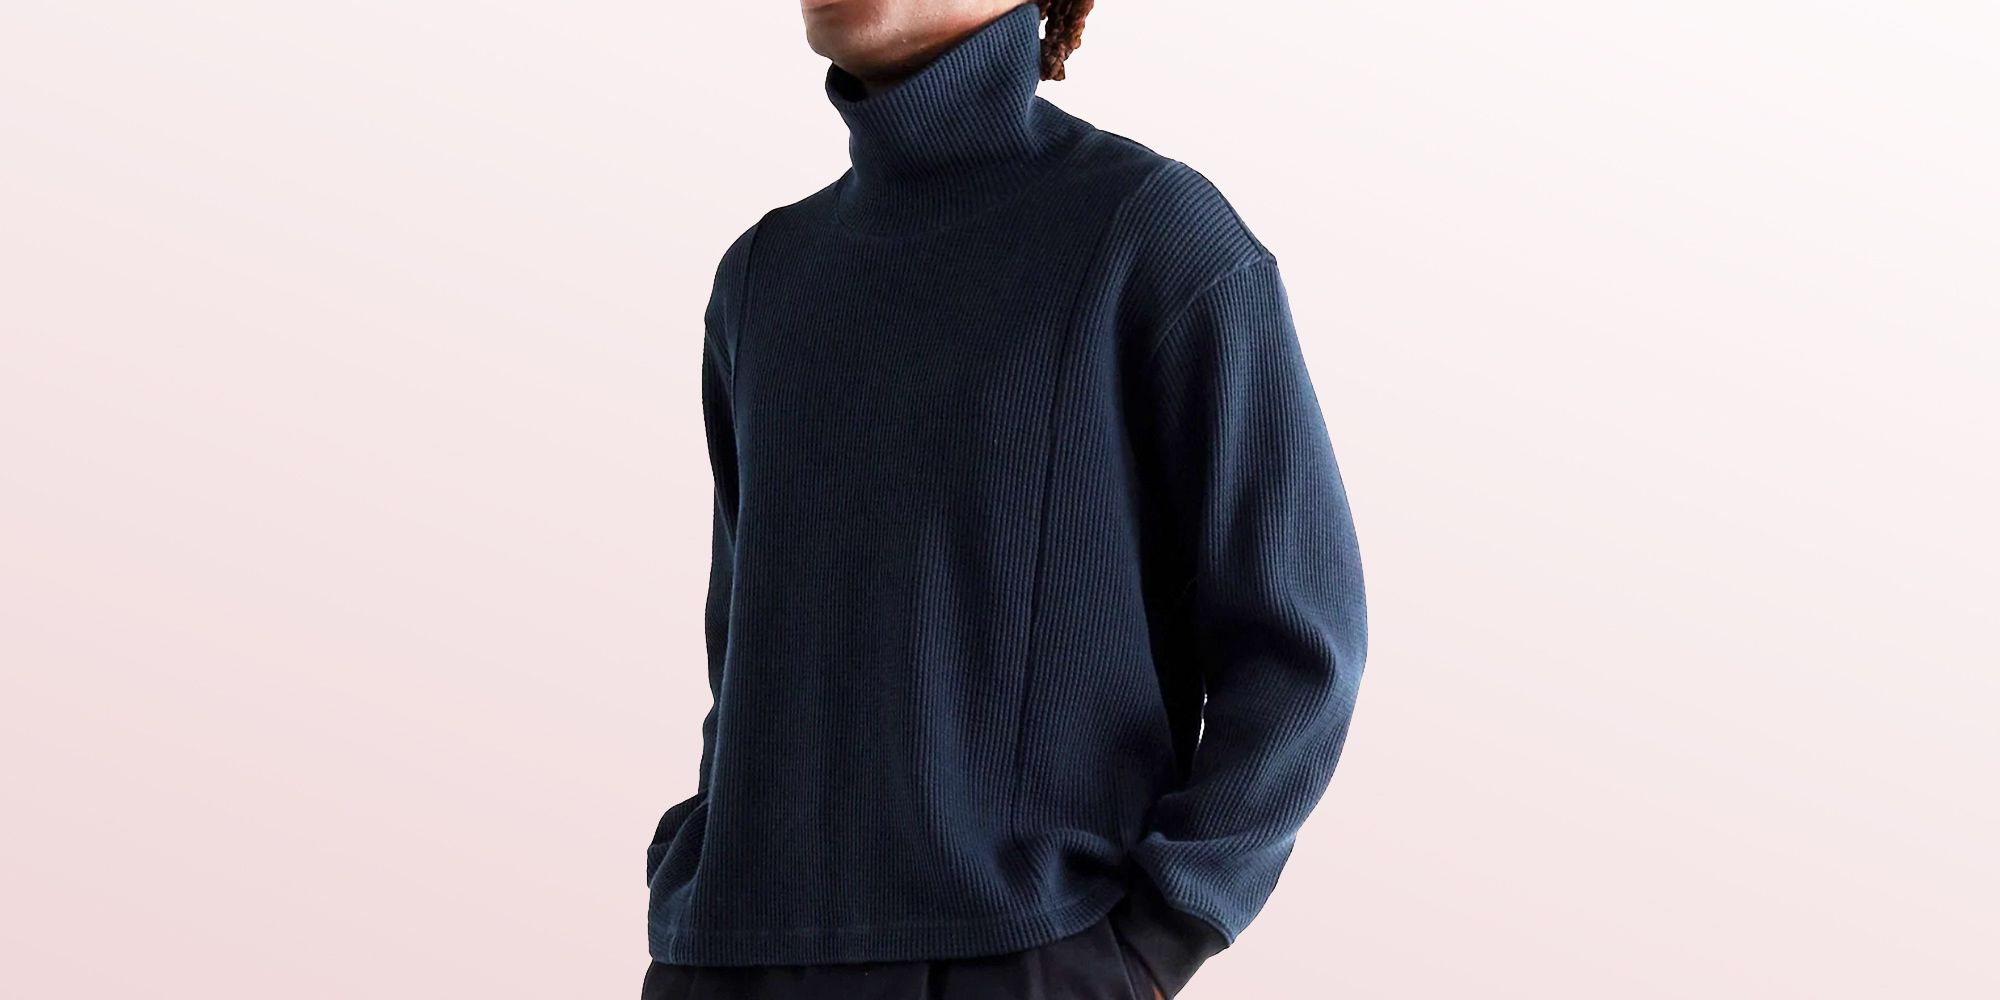 16 Best Men's Turtleneck Sweaters Winter 2020 Fashionable